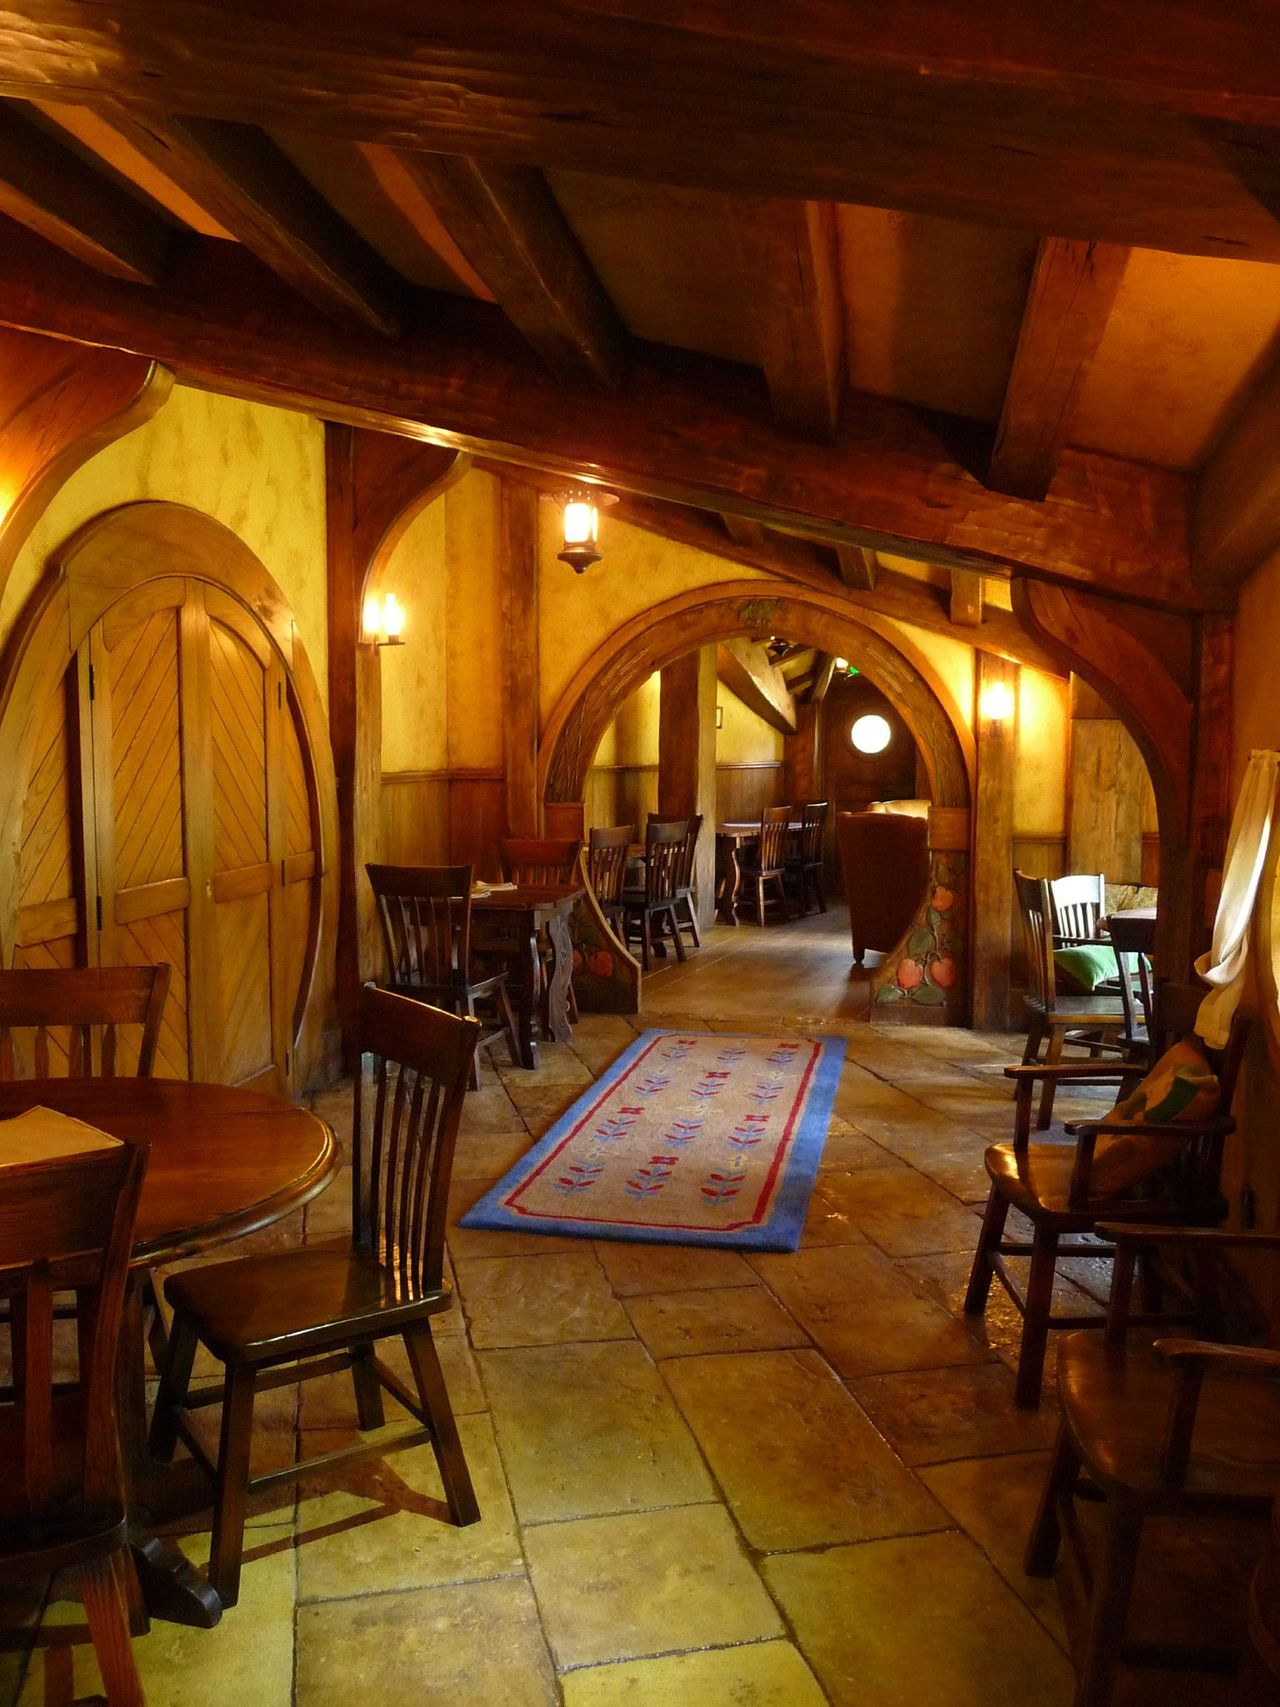 hobbit house pictures the hobbit set photos. Black Bedroom Furniture Sets. Home Design Ideas